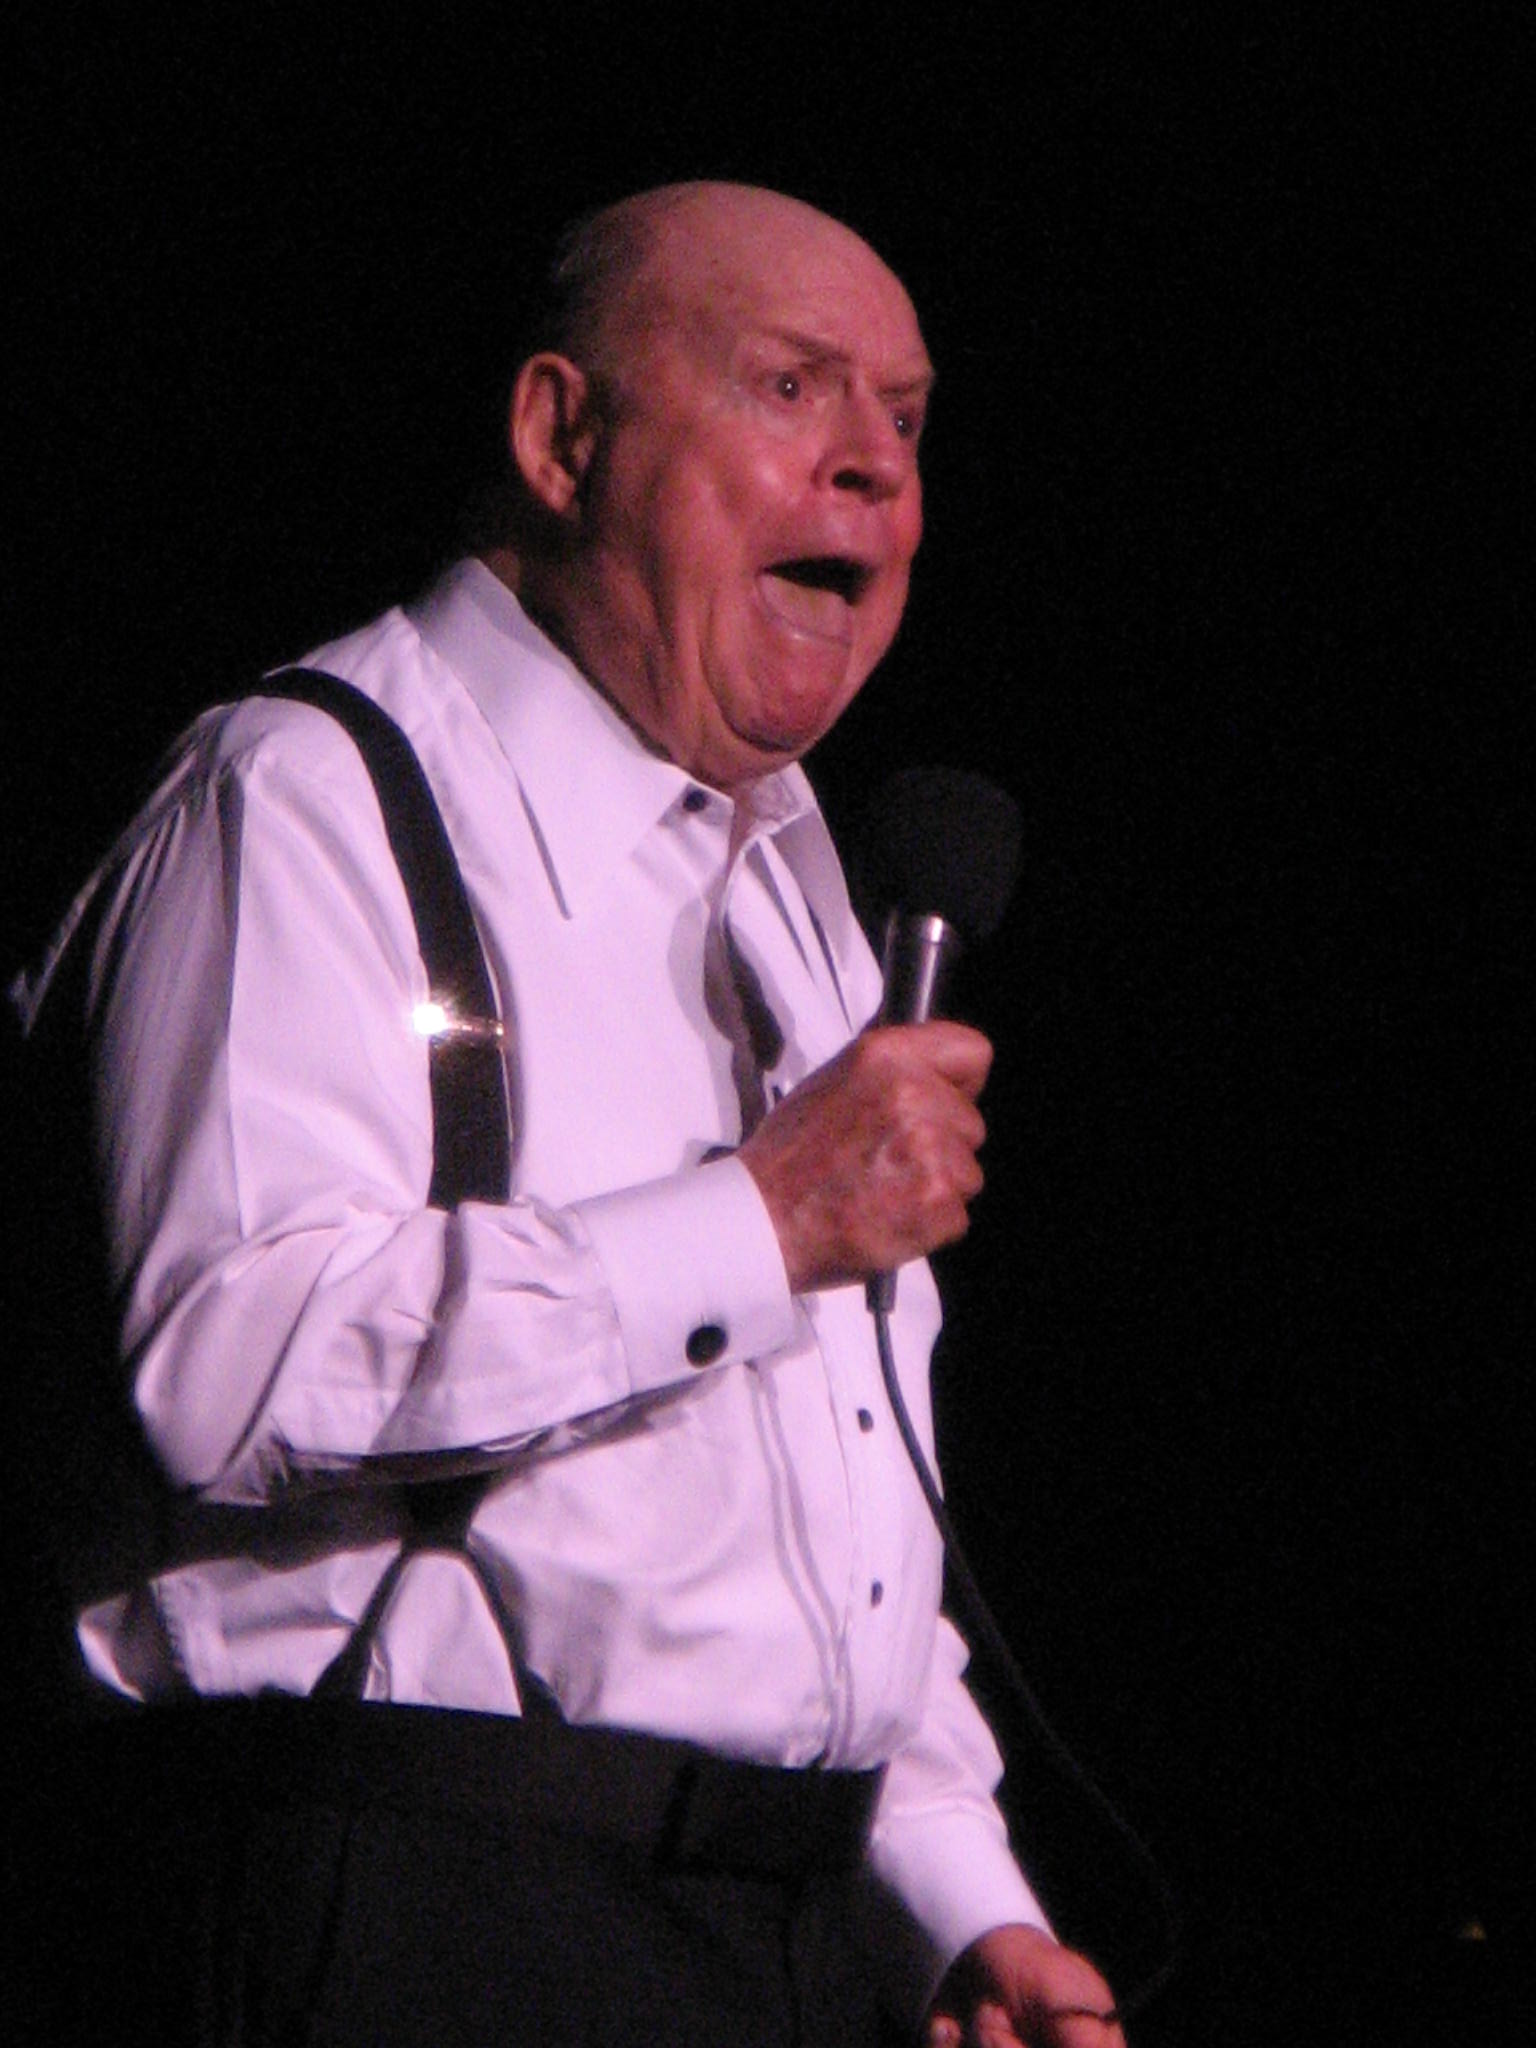 Don Rickles passes at 90